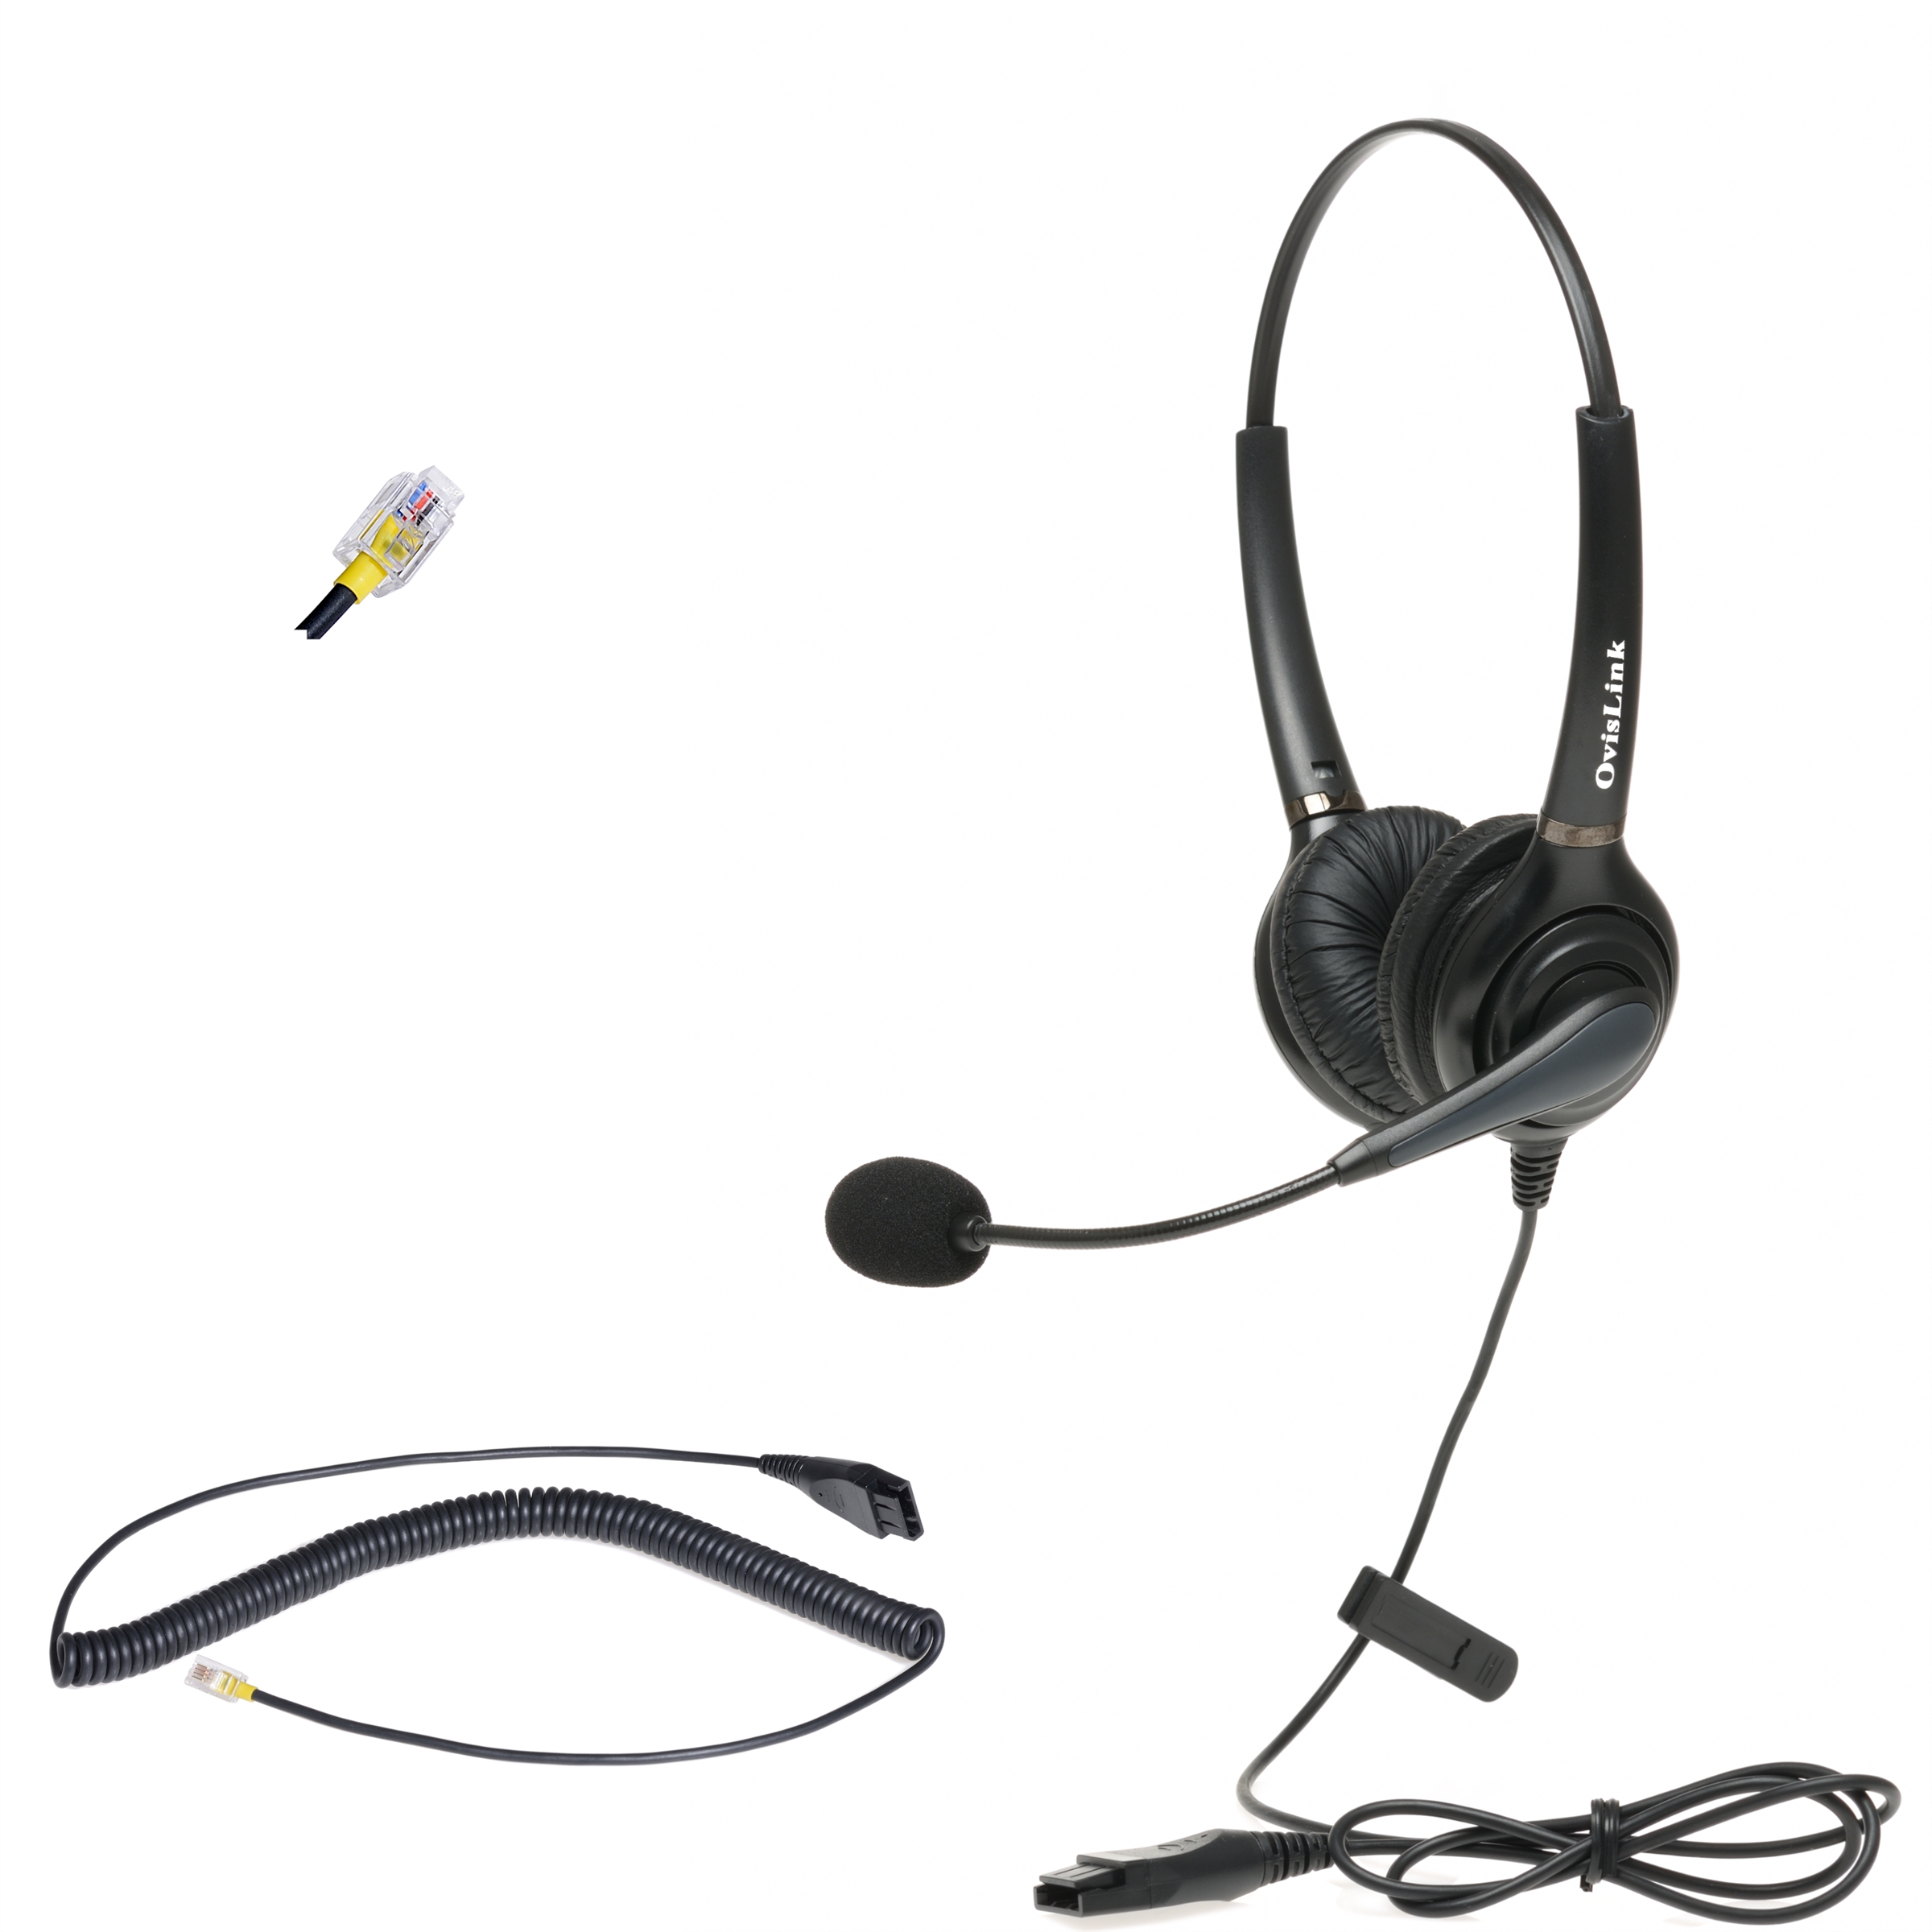 Cisco Unified IP Phone Headset, Dual Ear